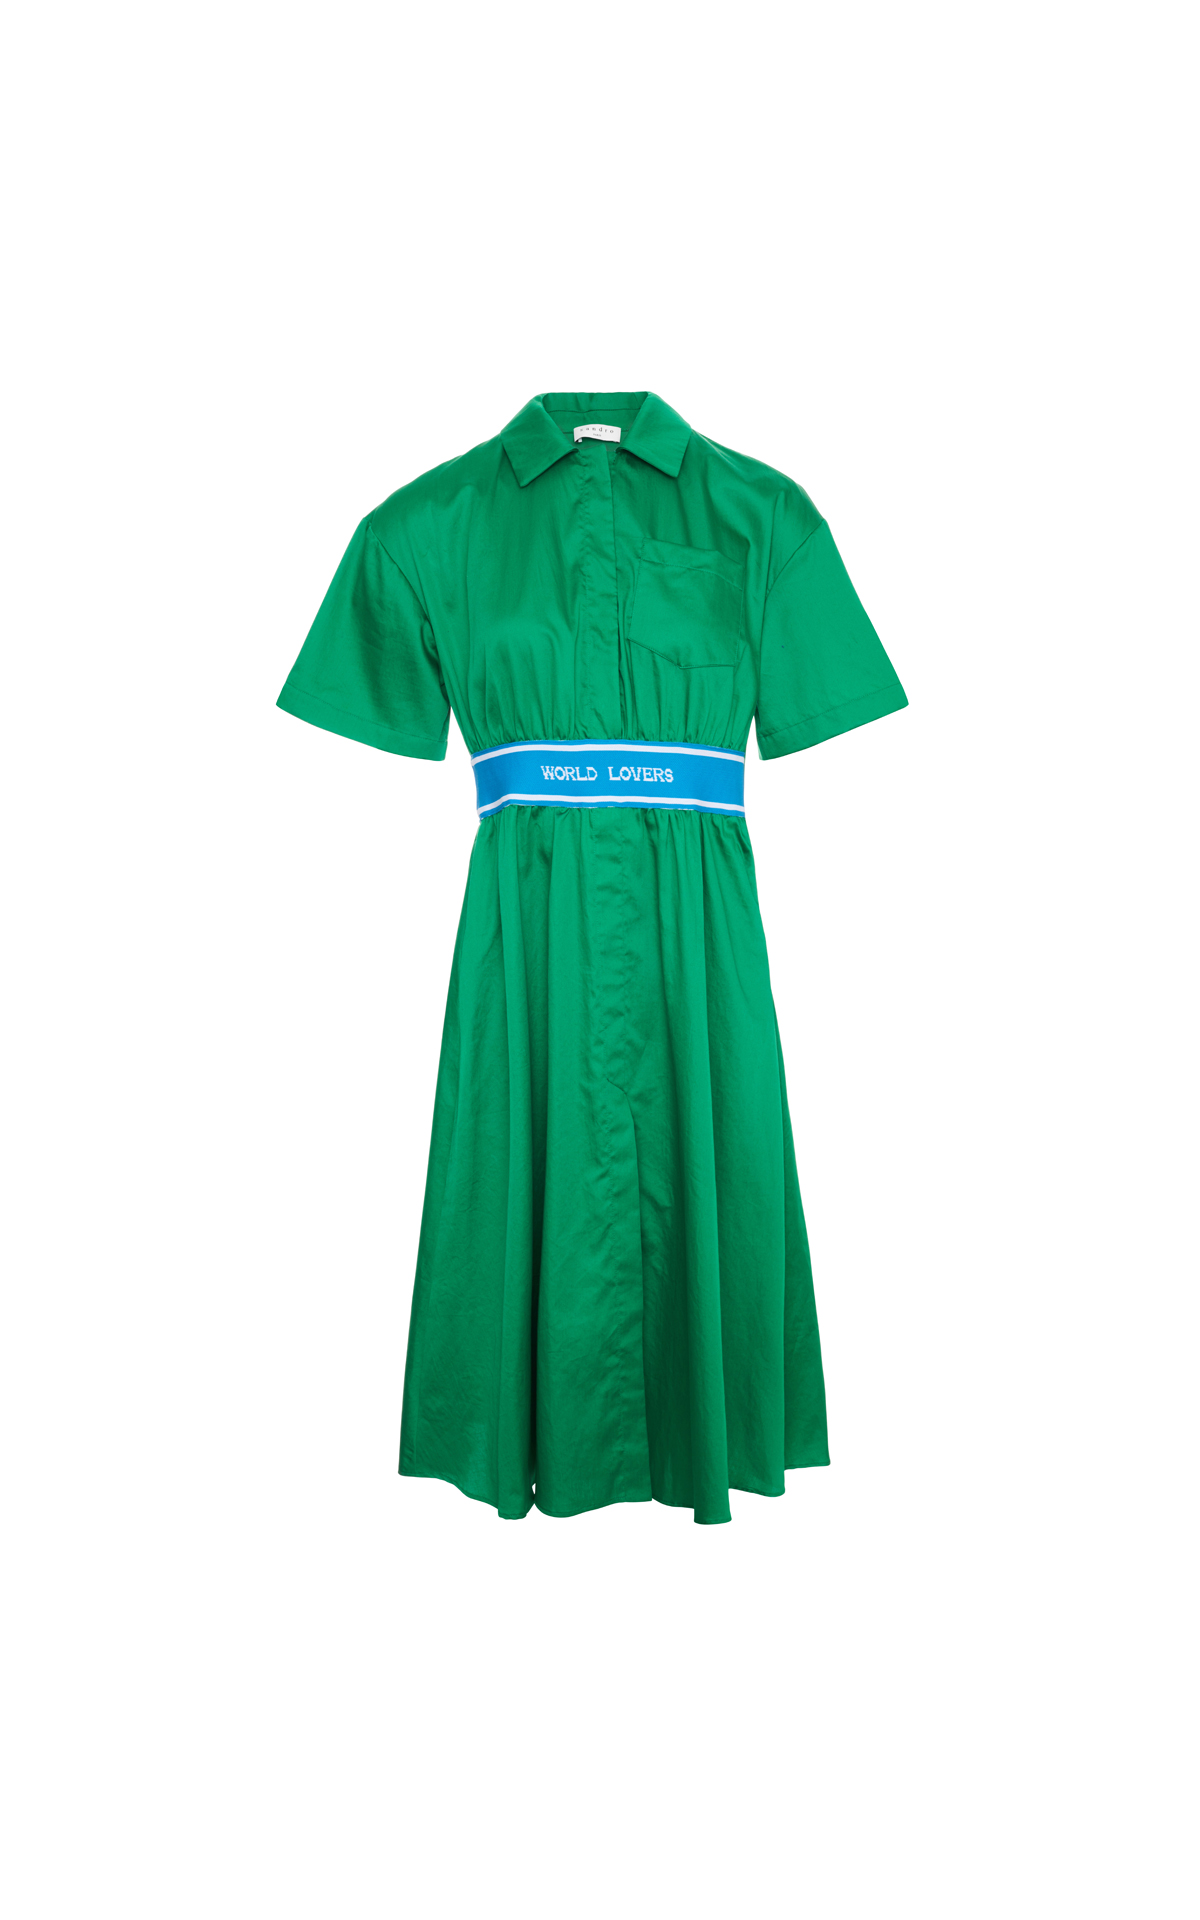 Sandro Green world lovers dress from Bicester Village